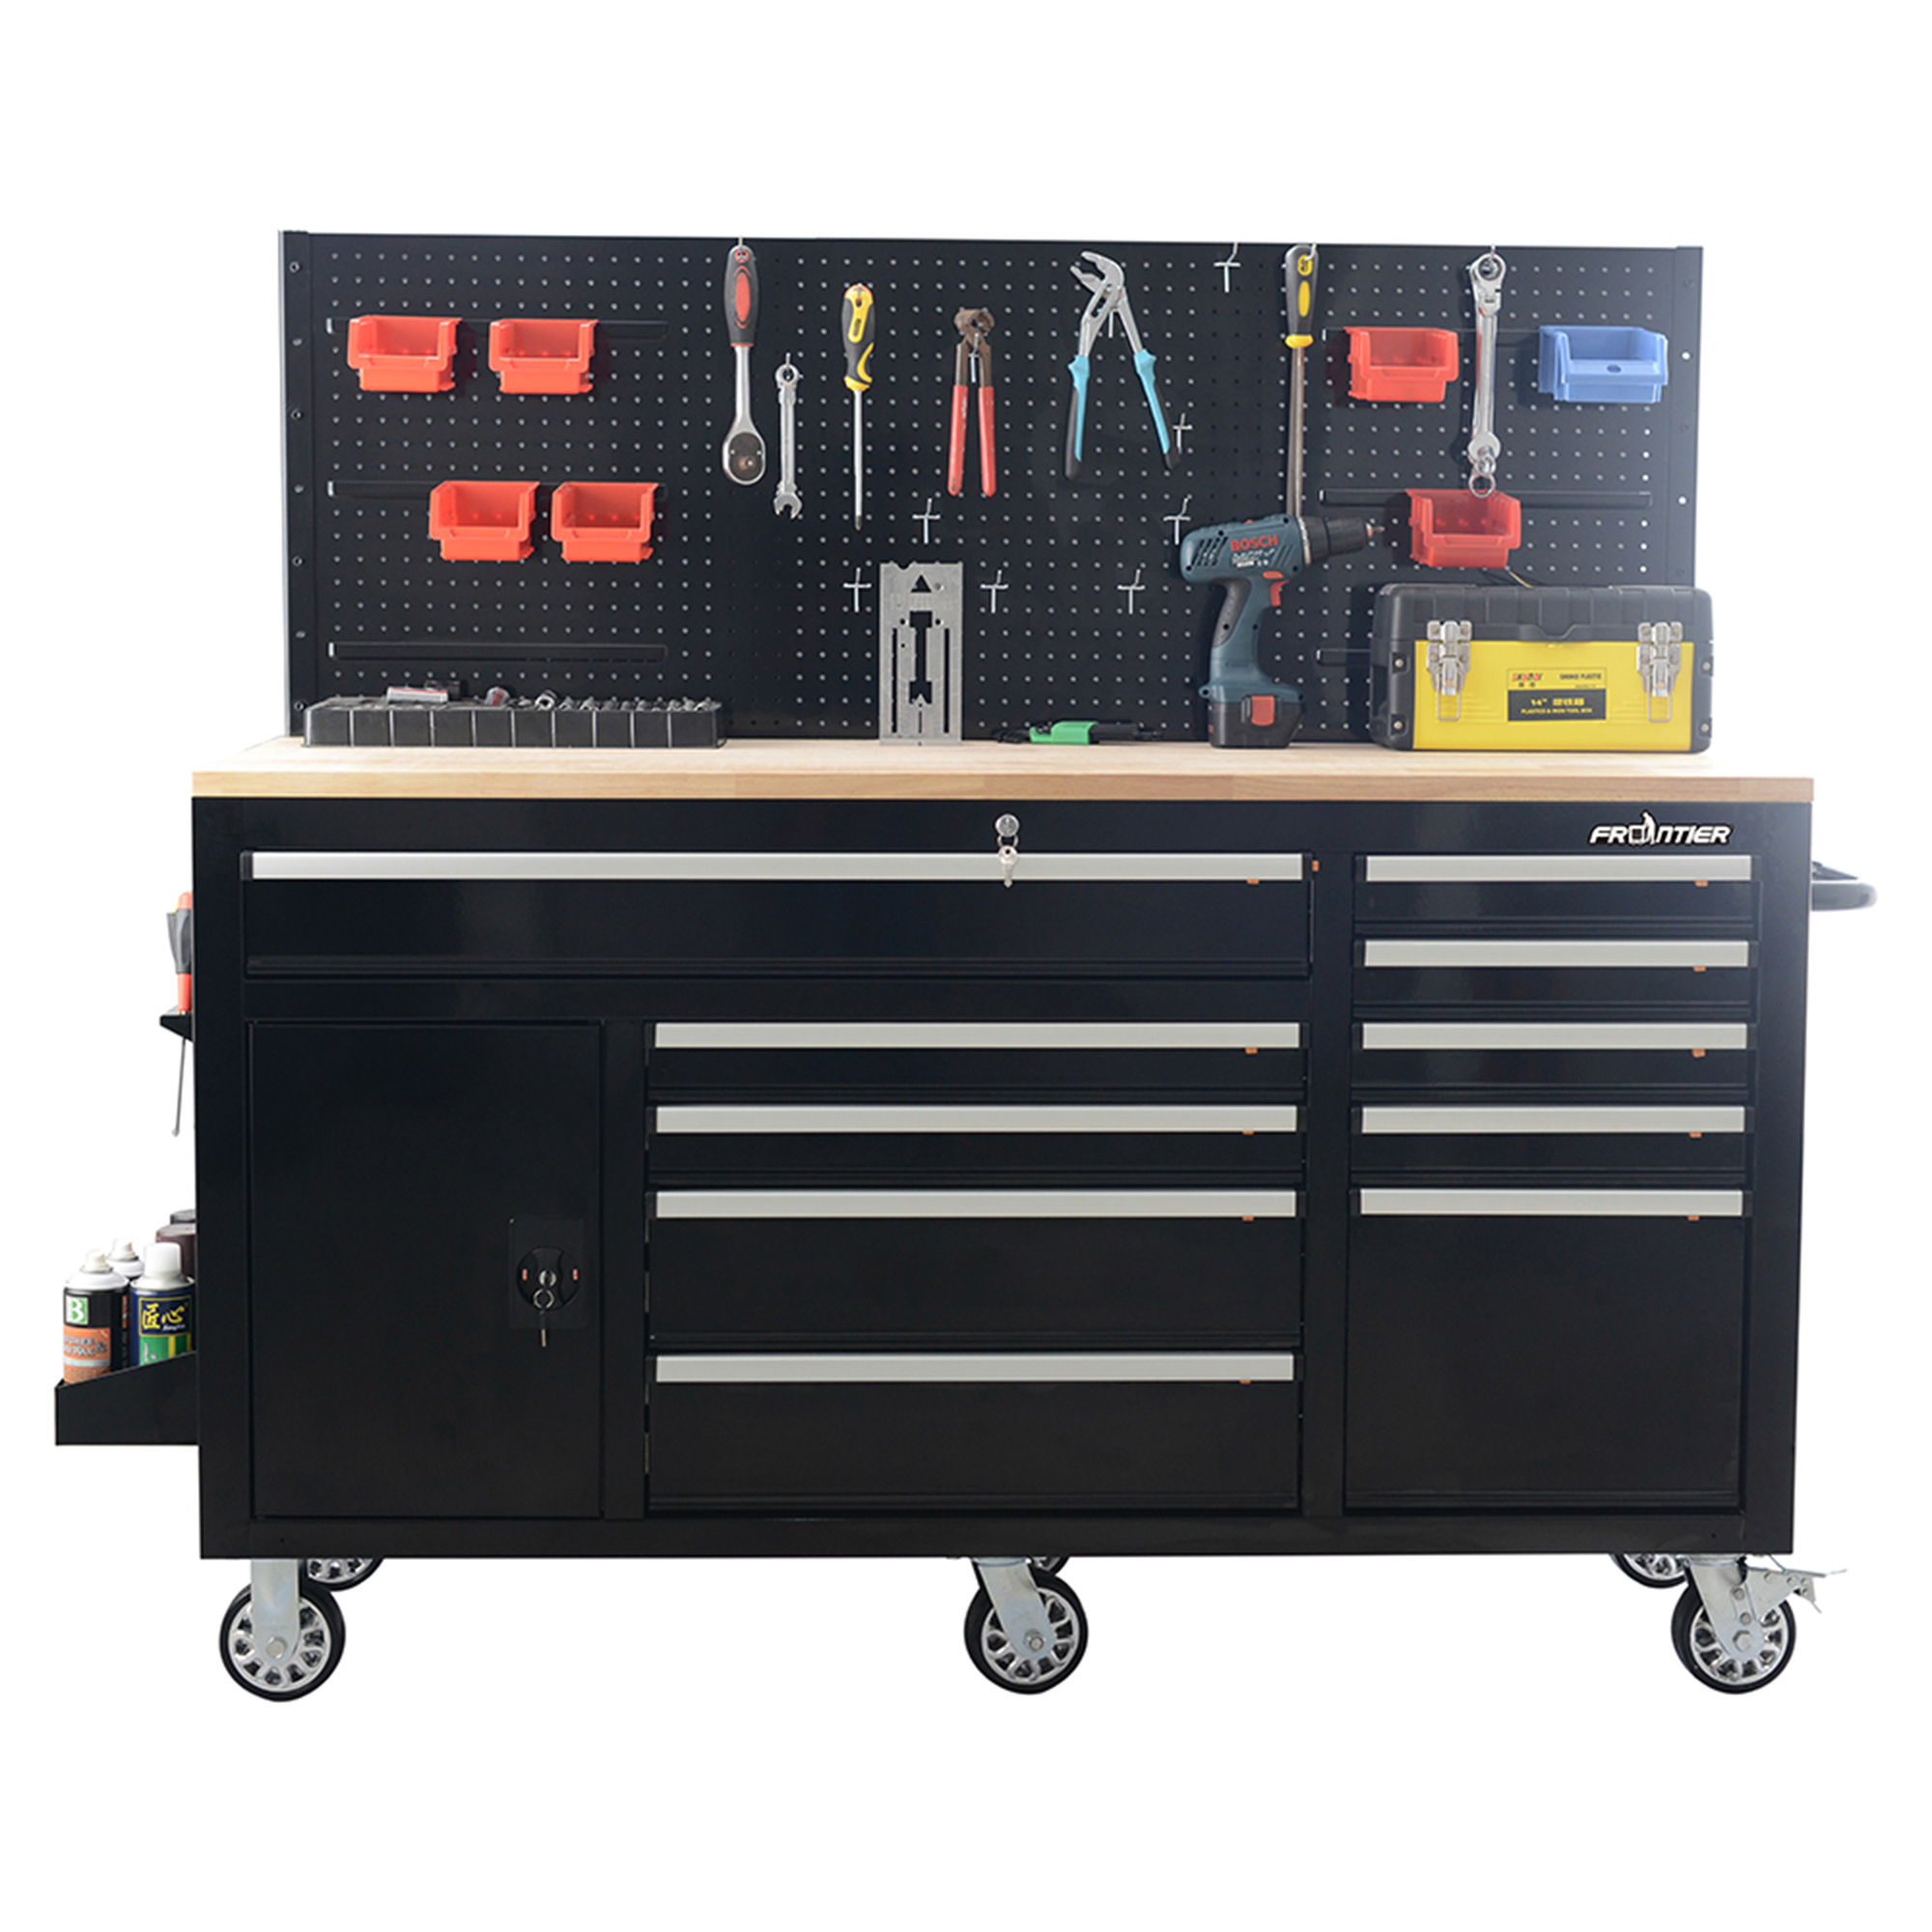 FRONTIER 62 inch Heavy Duty Mobile Work Station Tool Organizer